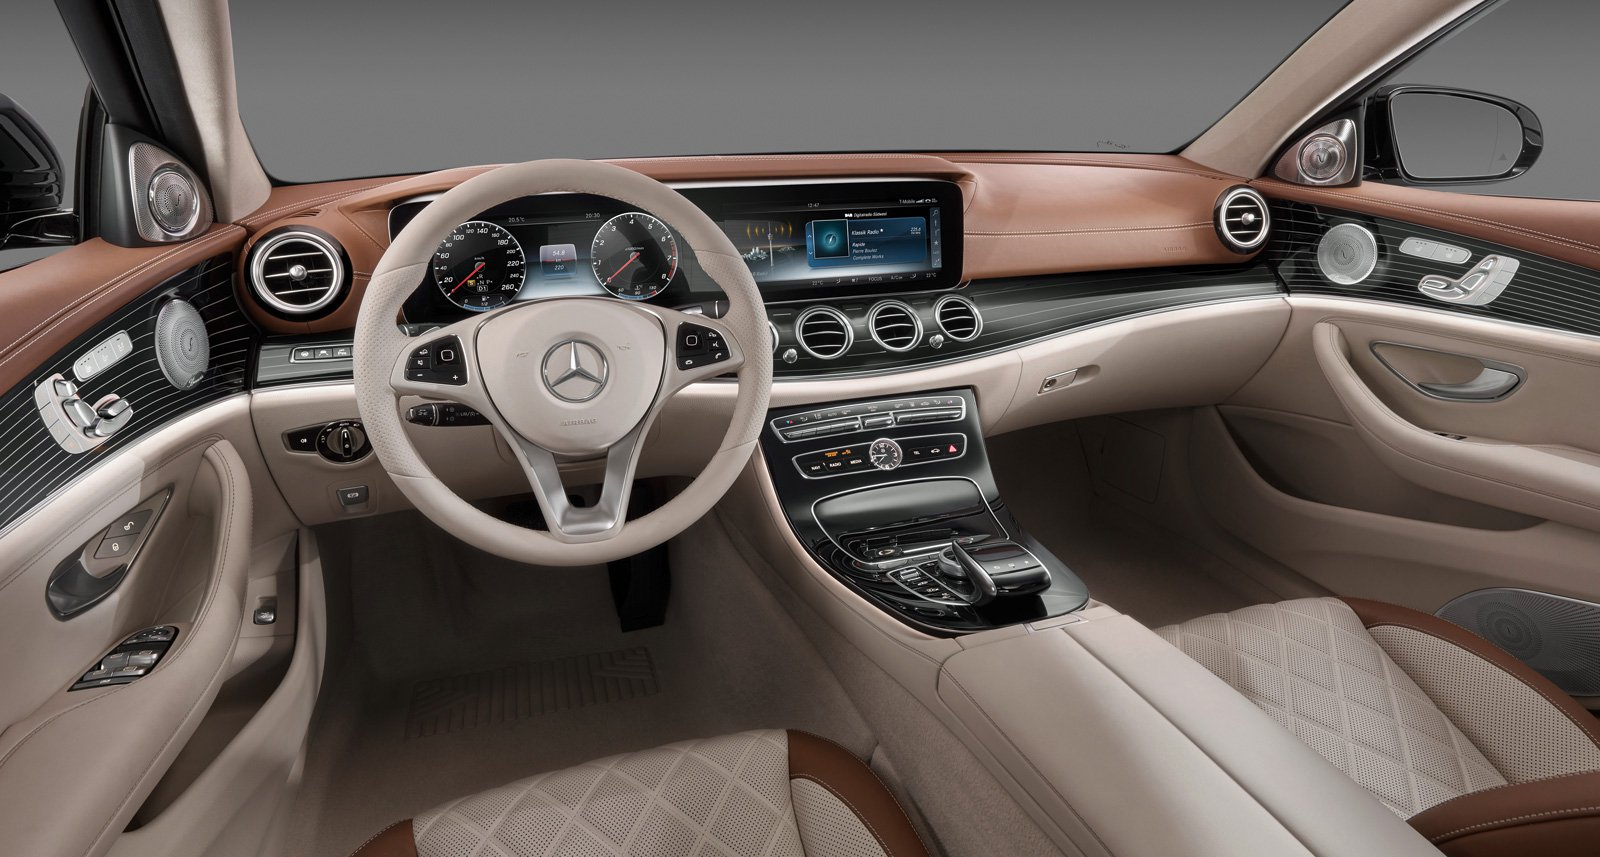 """The interior of the 2017 E-Class is dominated by two 12.3"""" displays which the world saw first in Tesla Model S."""